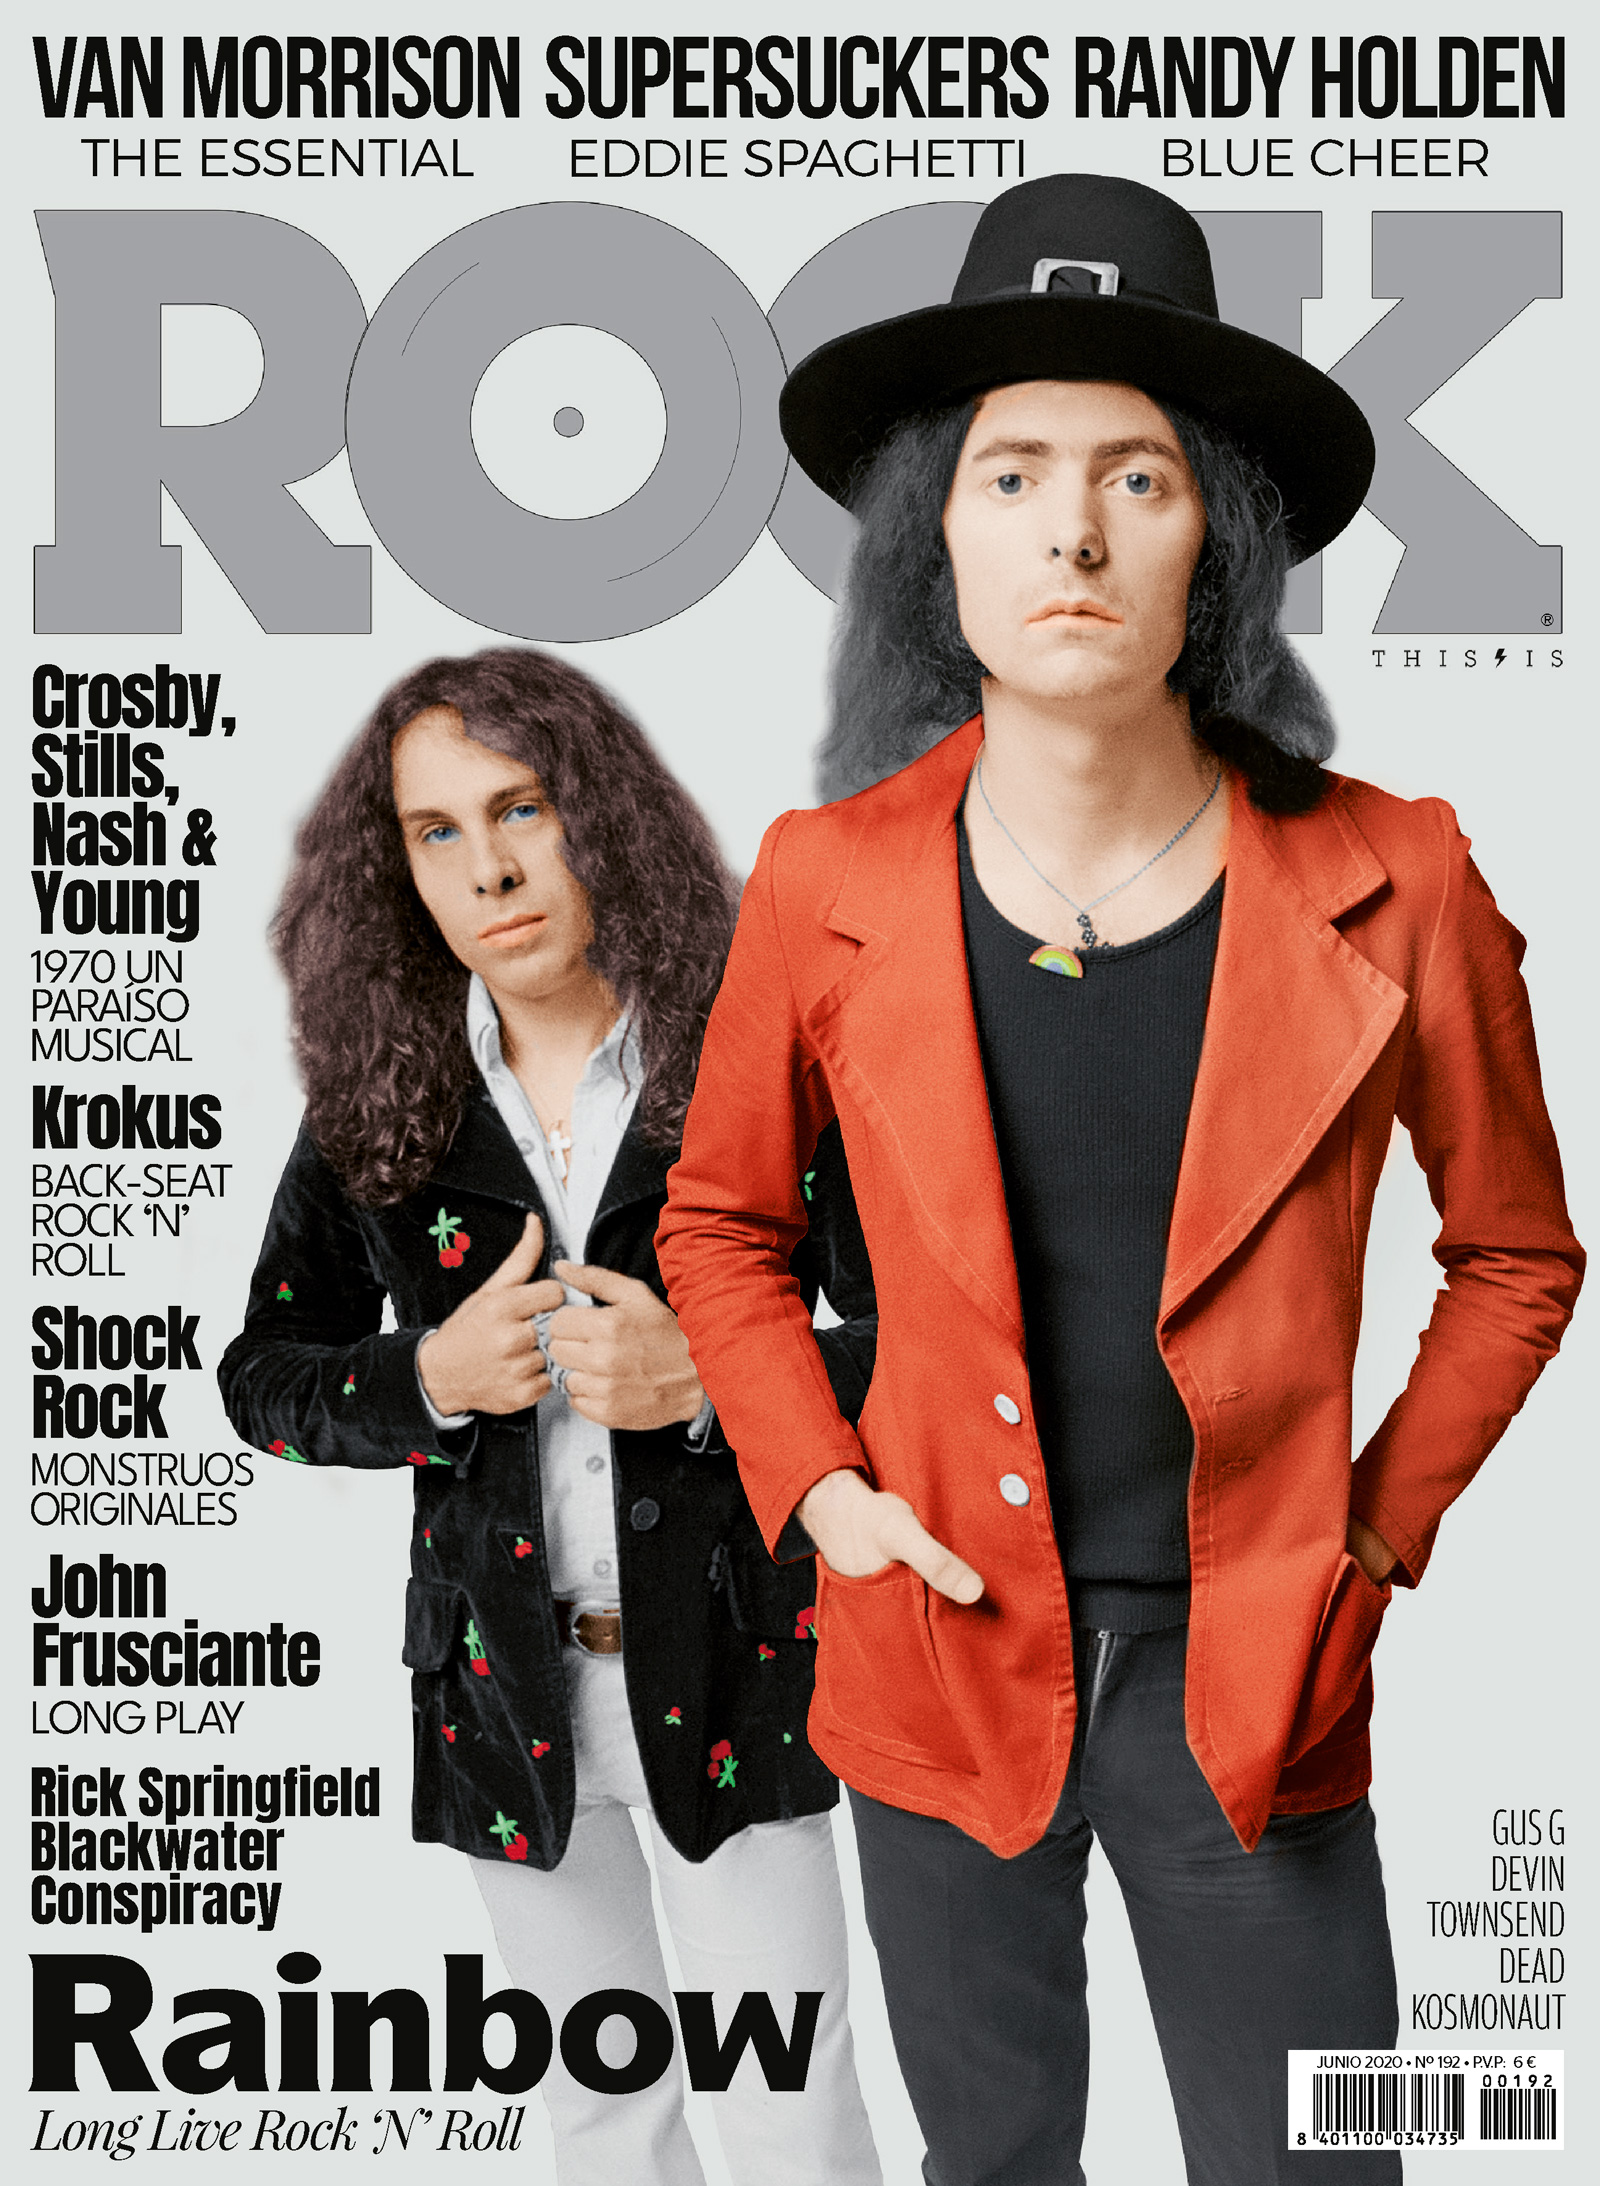 This Is Rock Junio 2020 Rainbow-Dio-Ritchie-Blackmore-La-Revista-Toda-la-Gente-del-Rock-Tu-Magazine-de-Classic-Rock-Hard-Rock-Heavy-Metal-Prog-Rock-Blues-Rock-